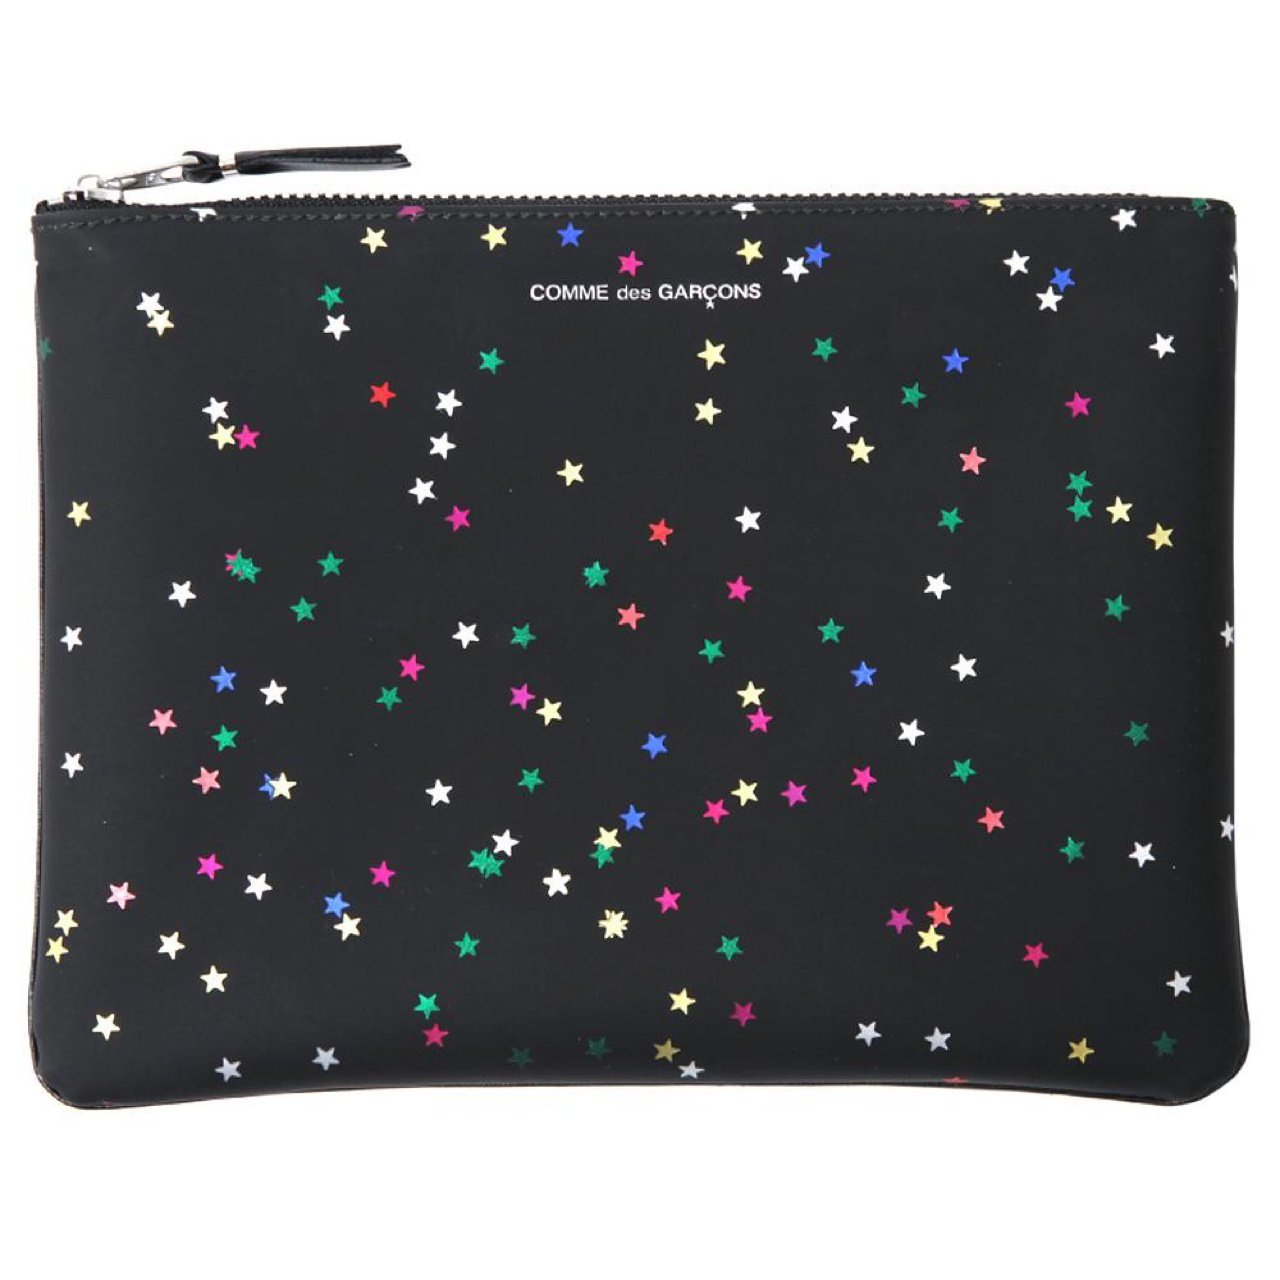 COMME des GARCONS Bright Star Document Holder